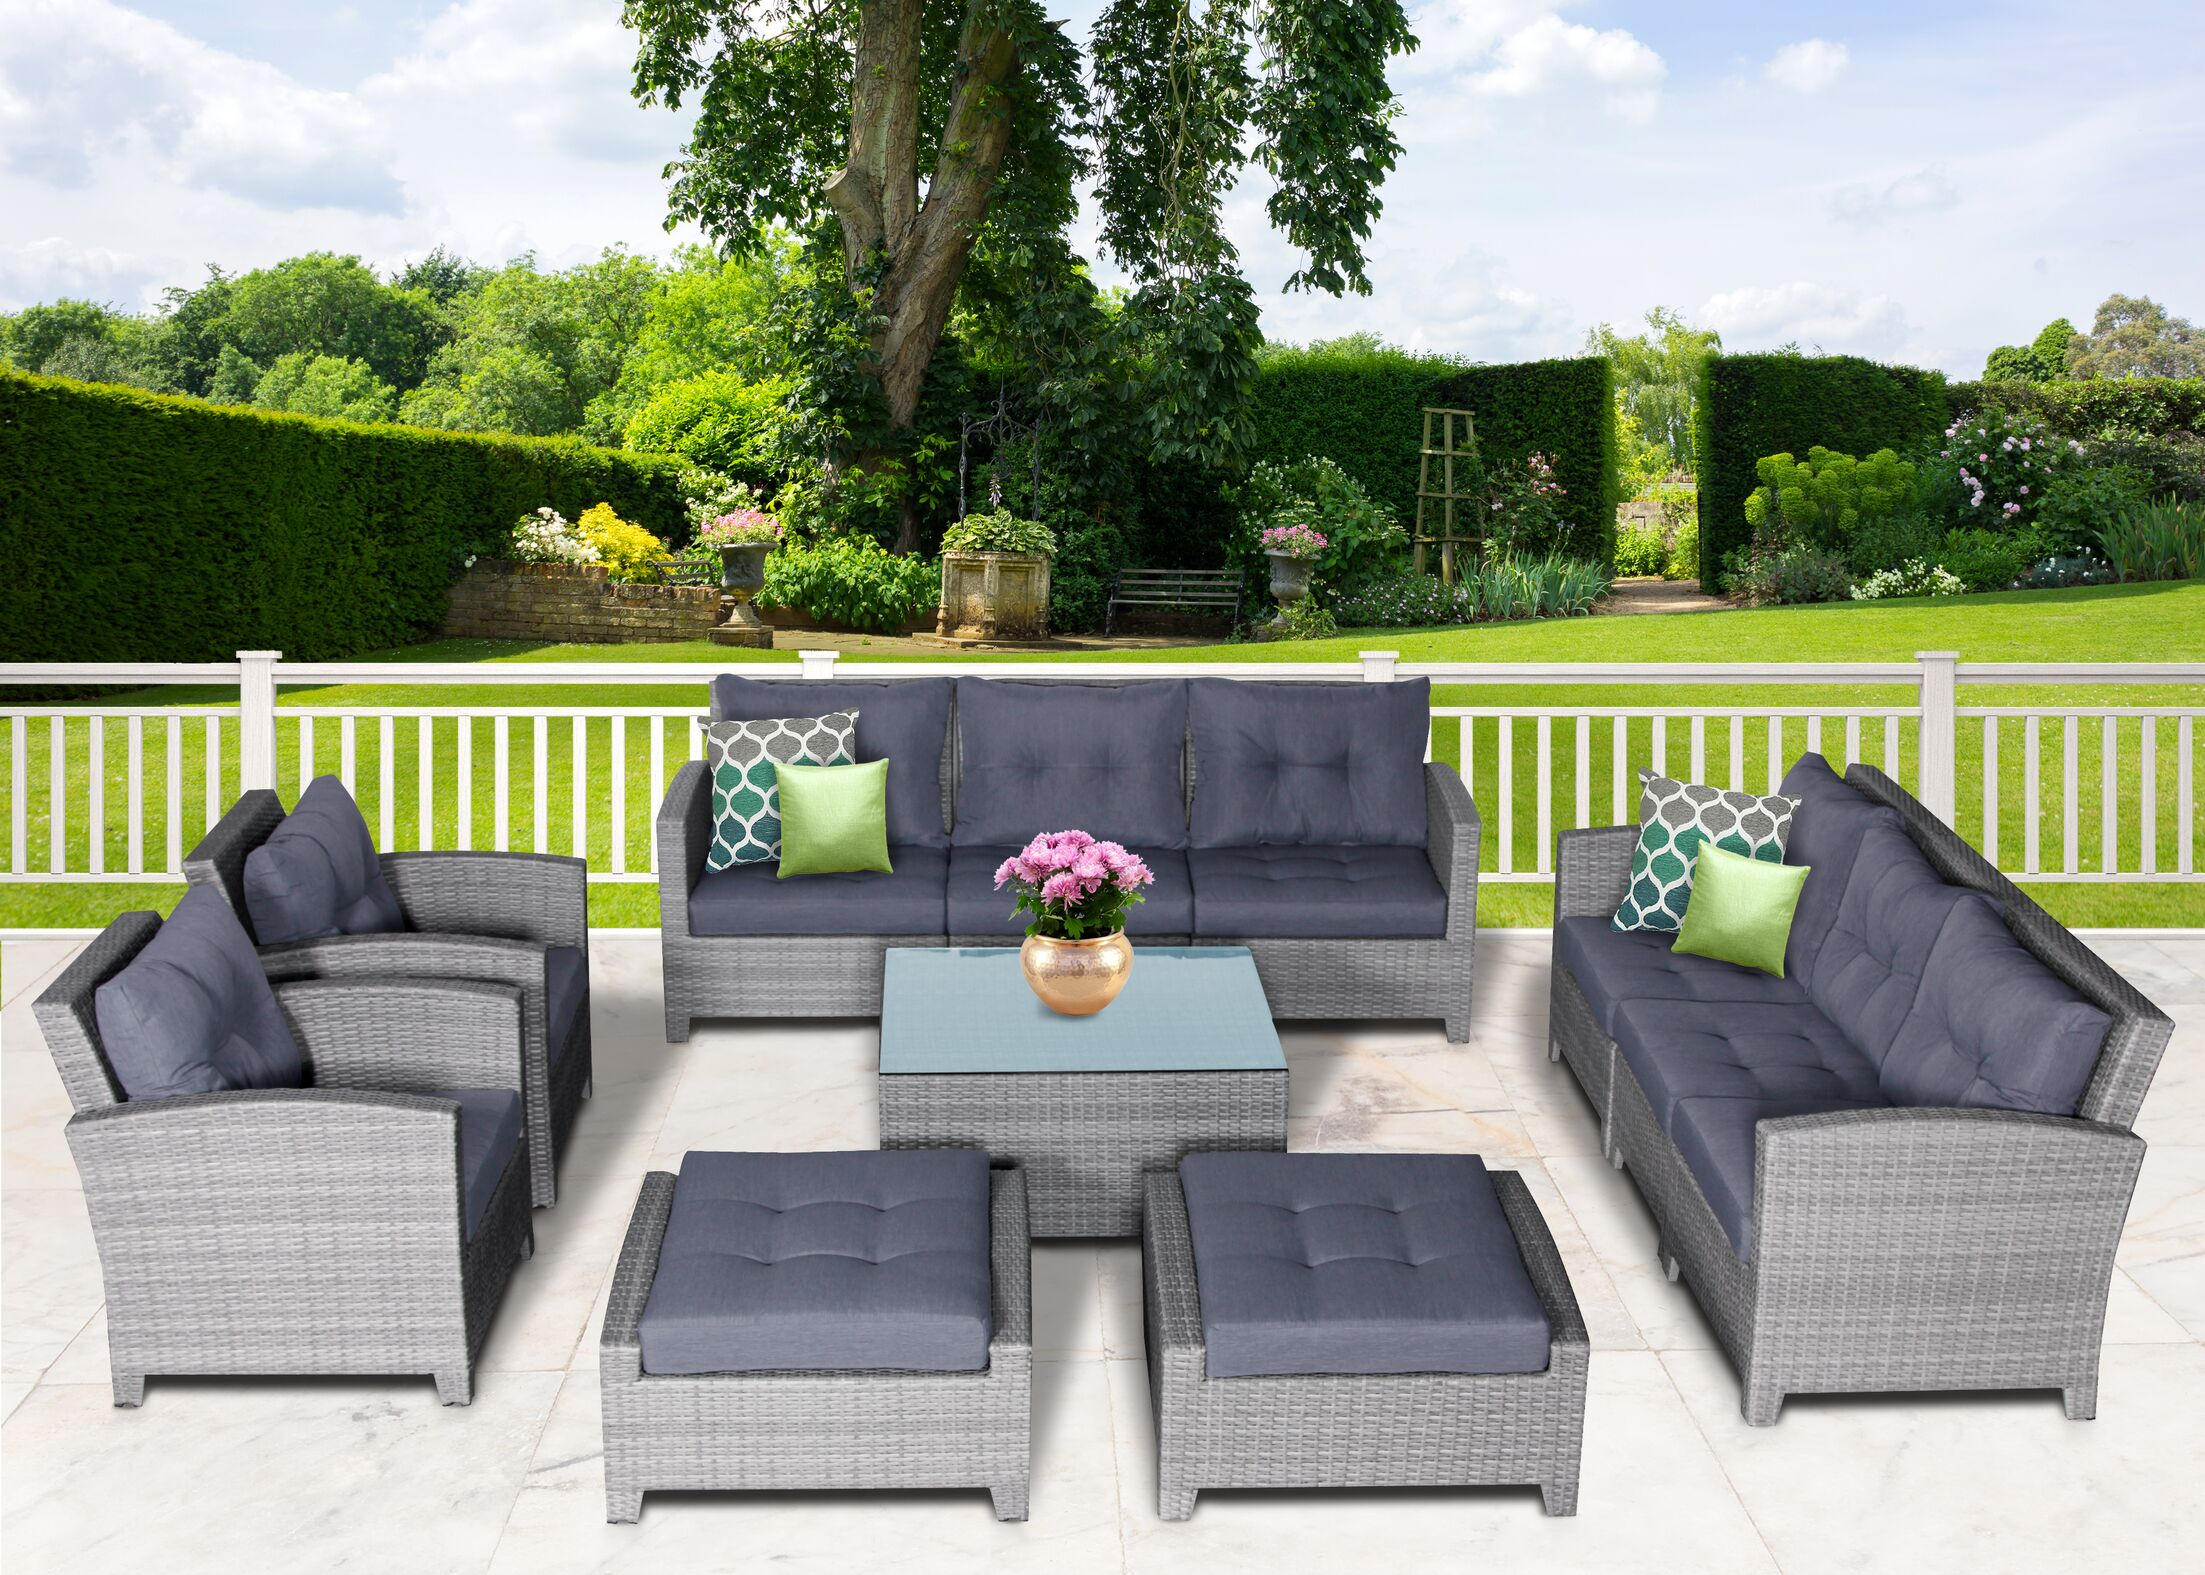 Dowdy 11 Piece Rattan Sectional Seating Group with Cushions Cushion Color: Gray